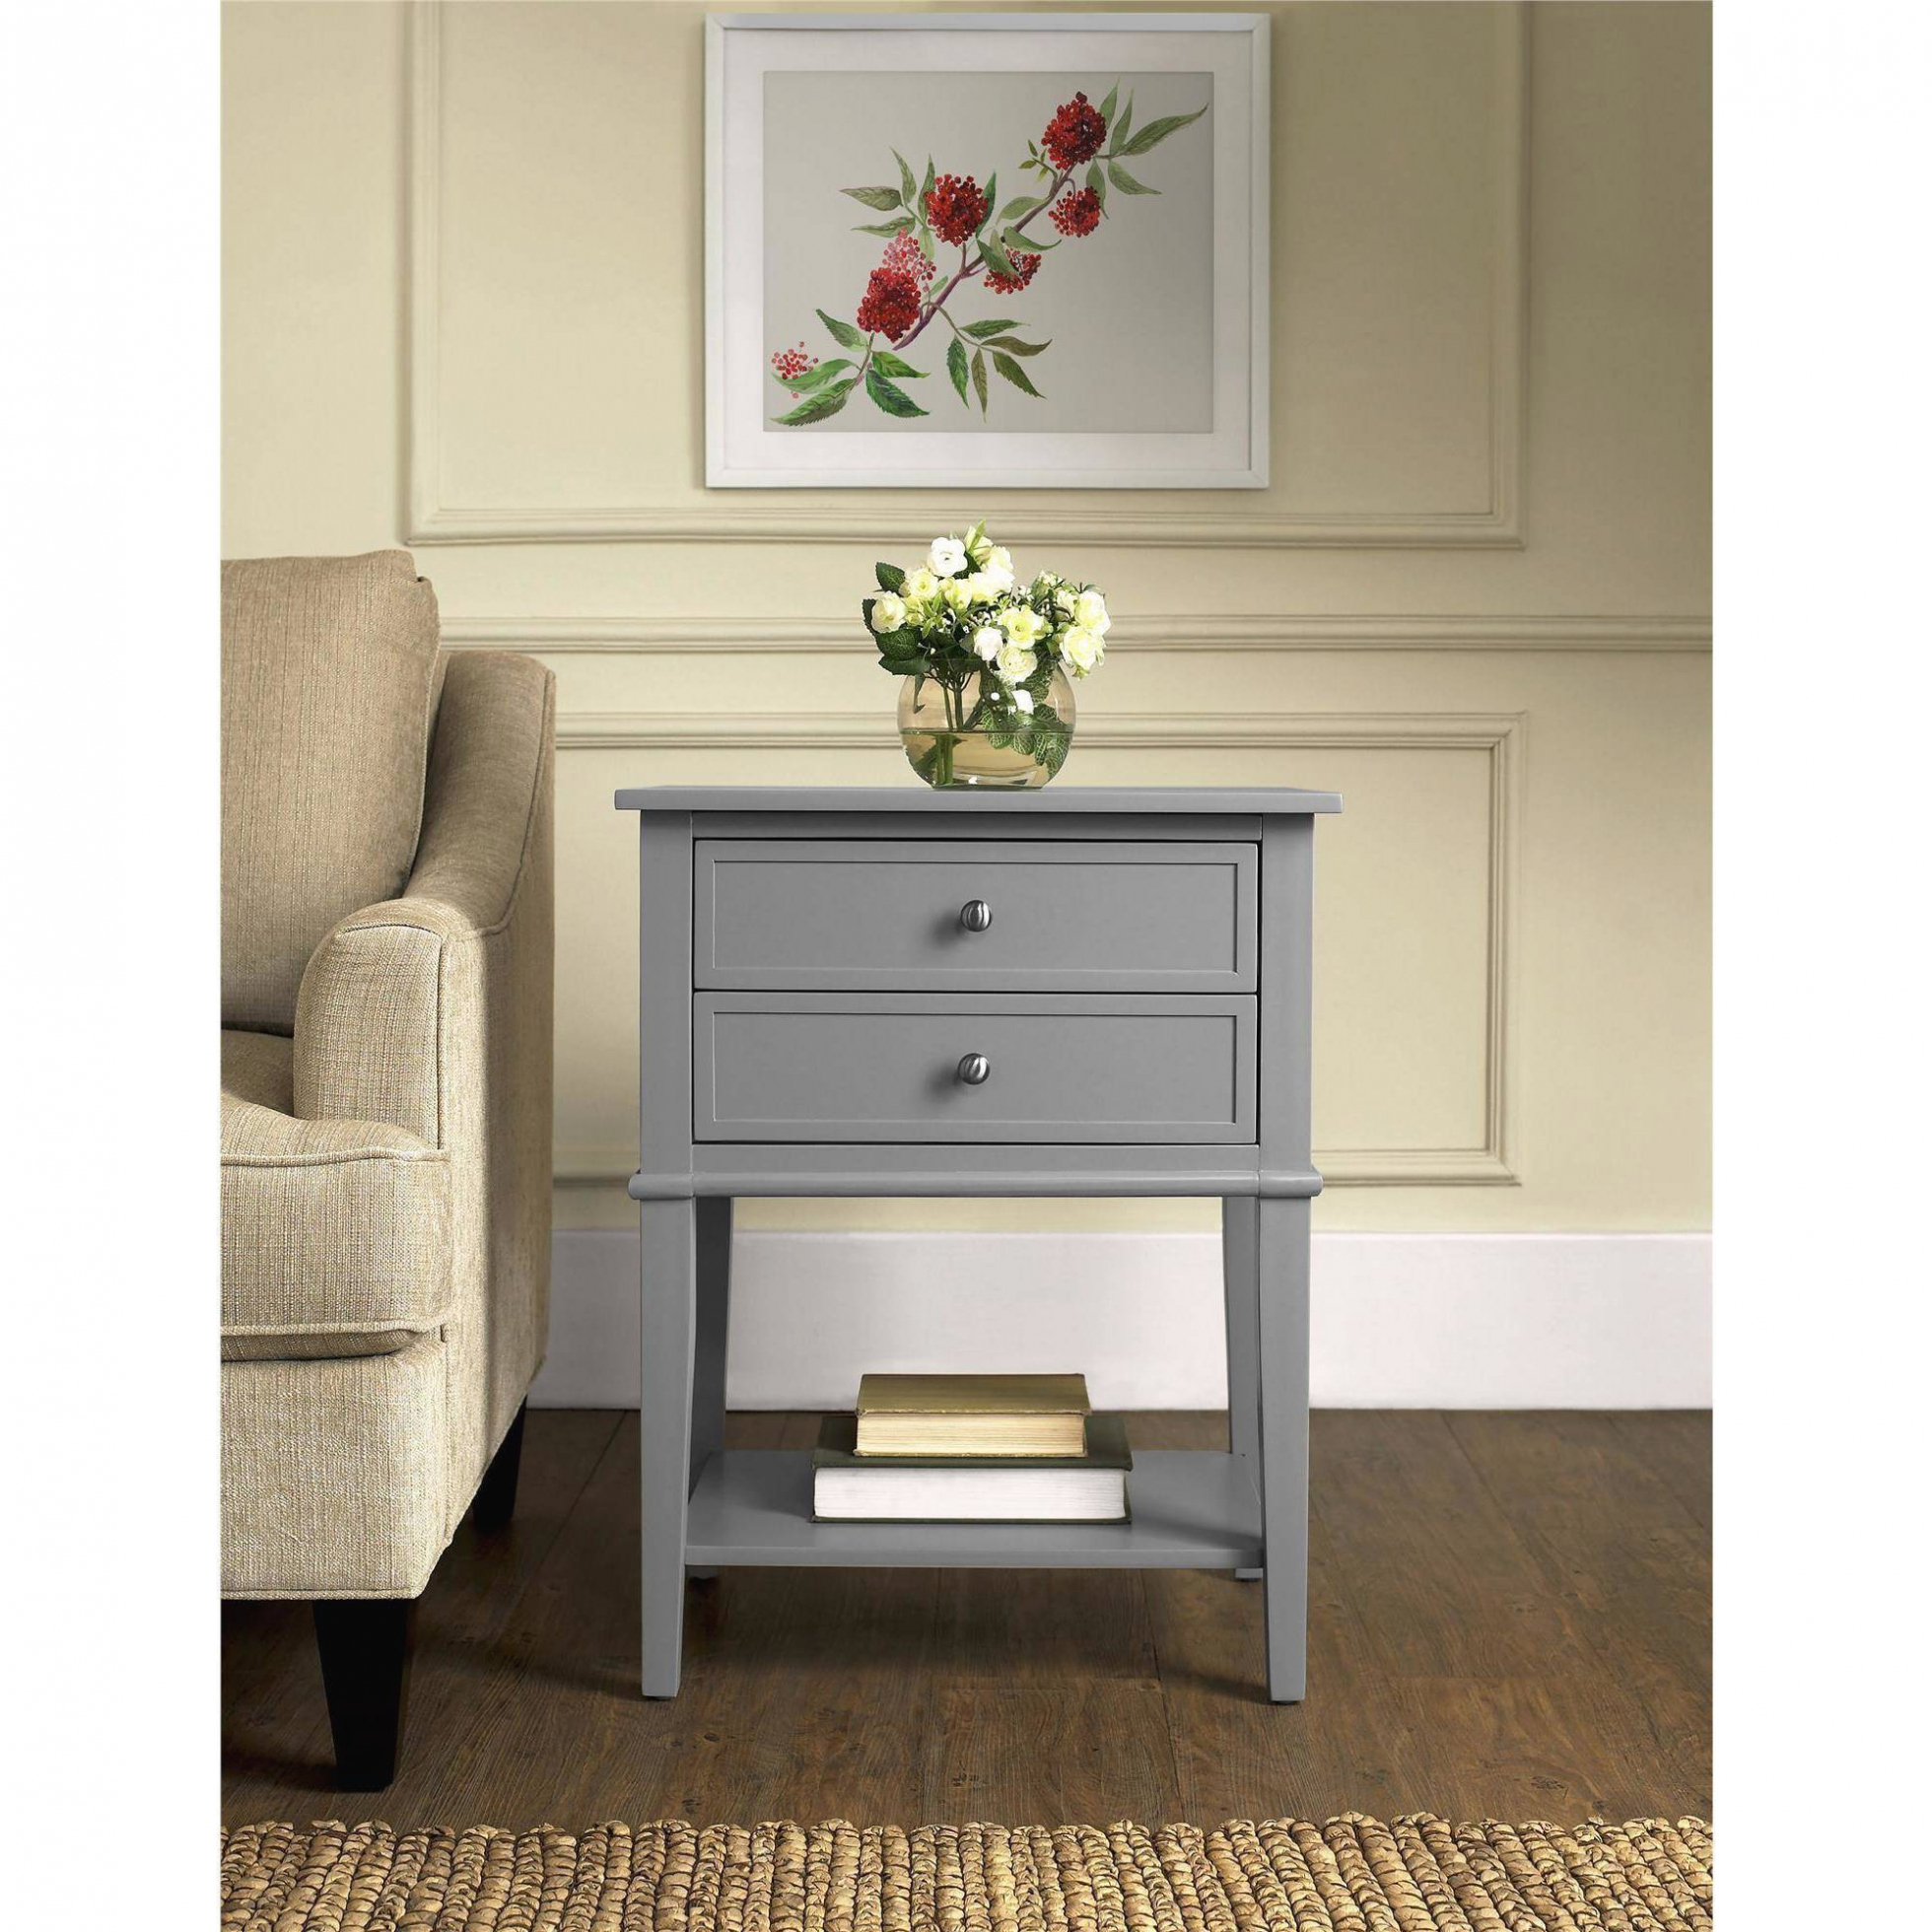 furniture altra franklin drawer accent table multiple colors regarding small with long narrow tables west elm morten lamp canadian tire lounge chairs end bench ikea crystal desk